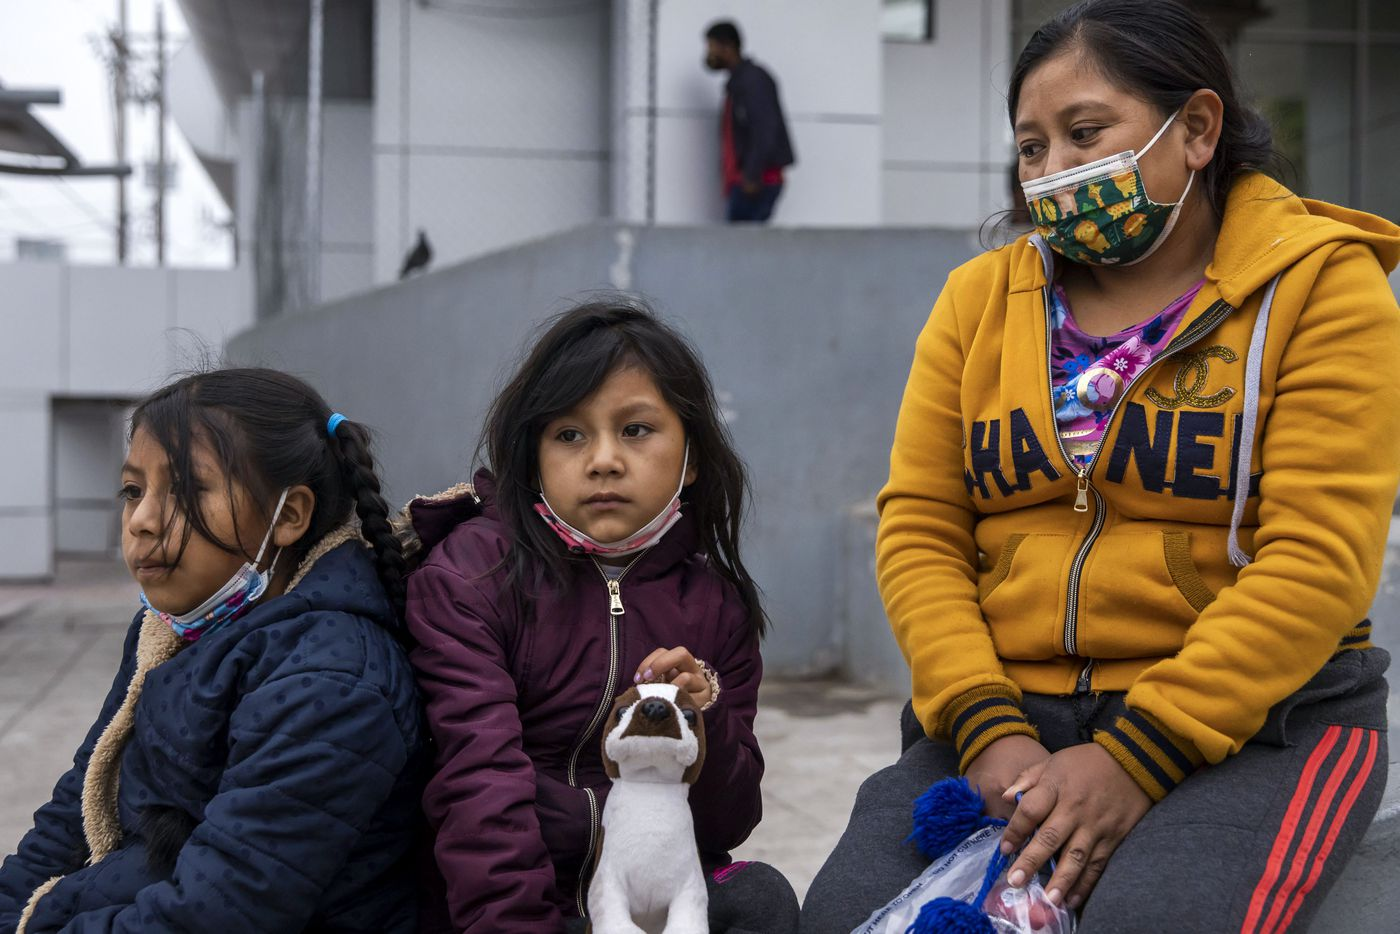 """Isabela Julaj, right, sits with her daughters Yésica, (center) 7, and Maria Francela, 8, along with other migrant families stranded in the plaza near the international bridge leading into Reynosa, in Mexico. The three were expelled from the United States overnight under Title 42 — a pandemic-related public order still in place and left over from the Trump administration. The single mother of two said she feels she has no choice but to return to Guatemala. """"There's nothing left for me to do,"""" Julaj said. """"I have very little money left."""""""